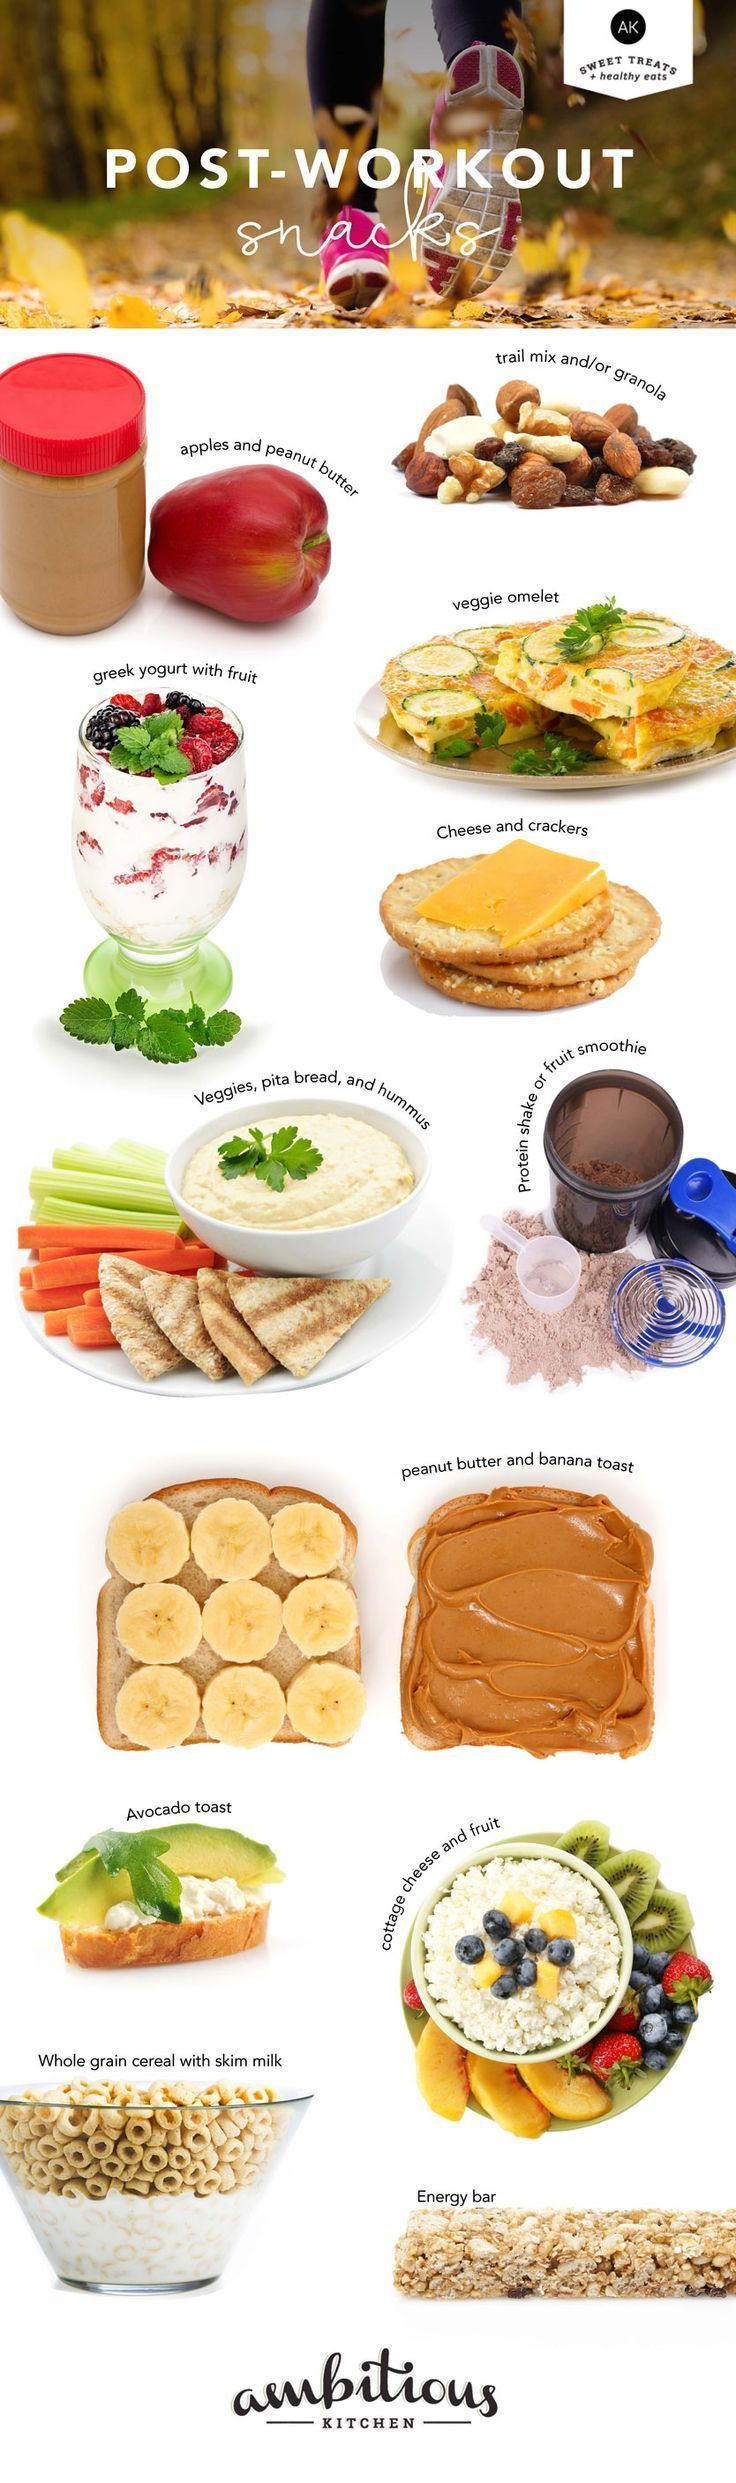 awesome 12 Healthy Post Workout Snacks -- provides great options for refueling your musc...